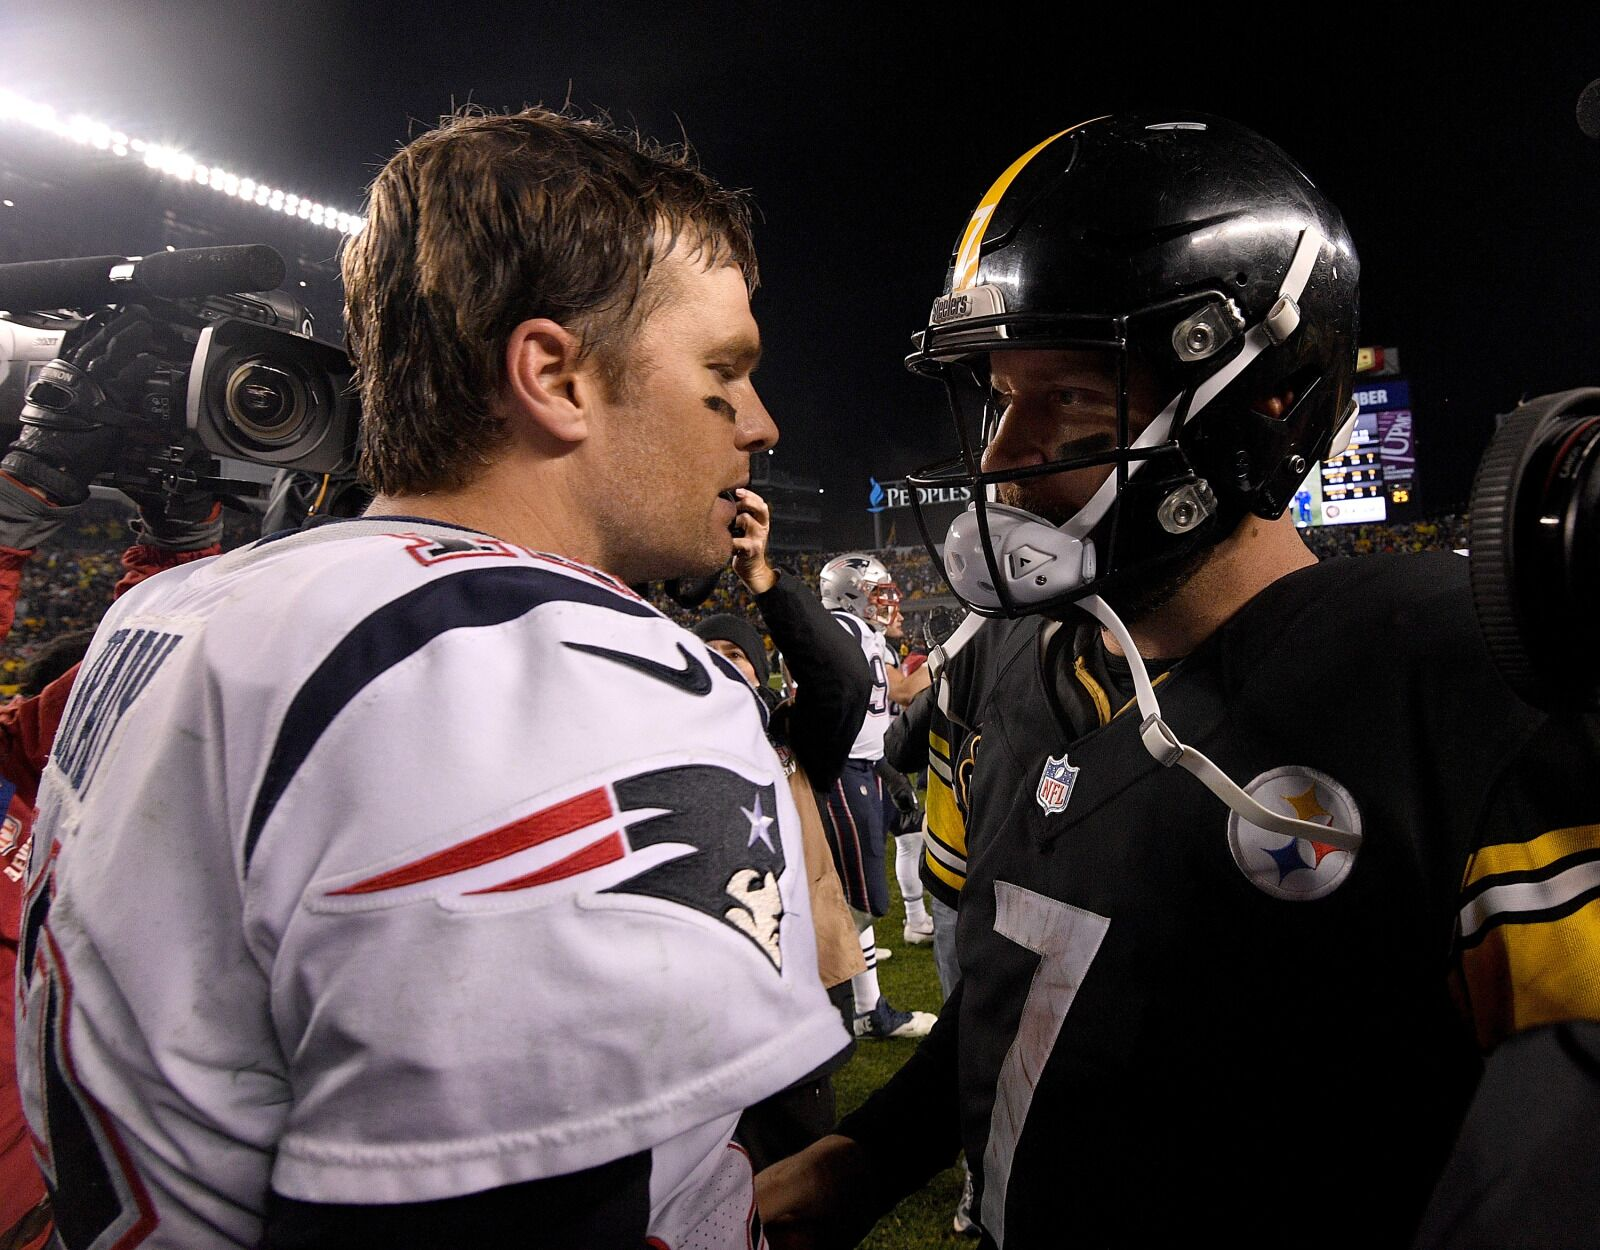 ac49a0fcb08 New England Patriots to open season against Pittsburgh Steelers